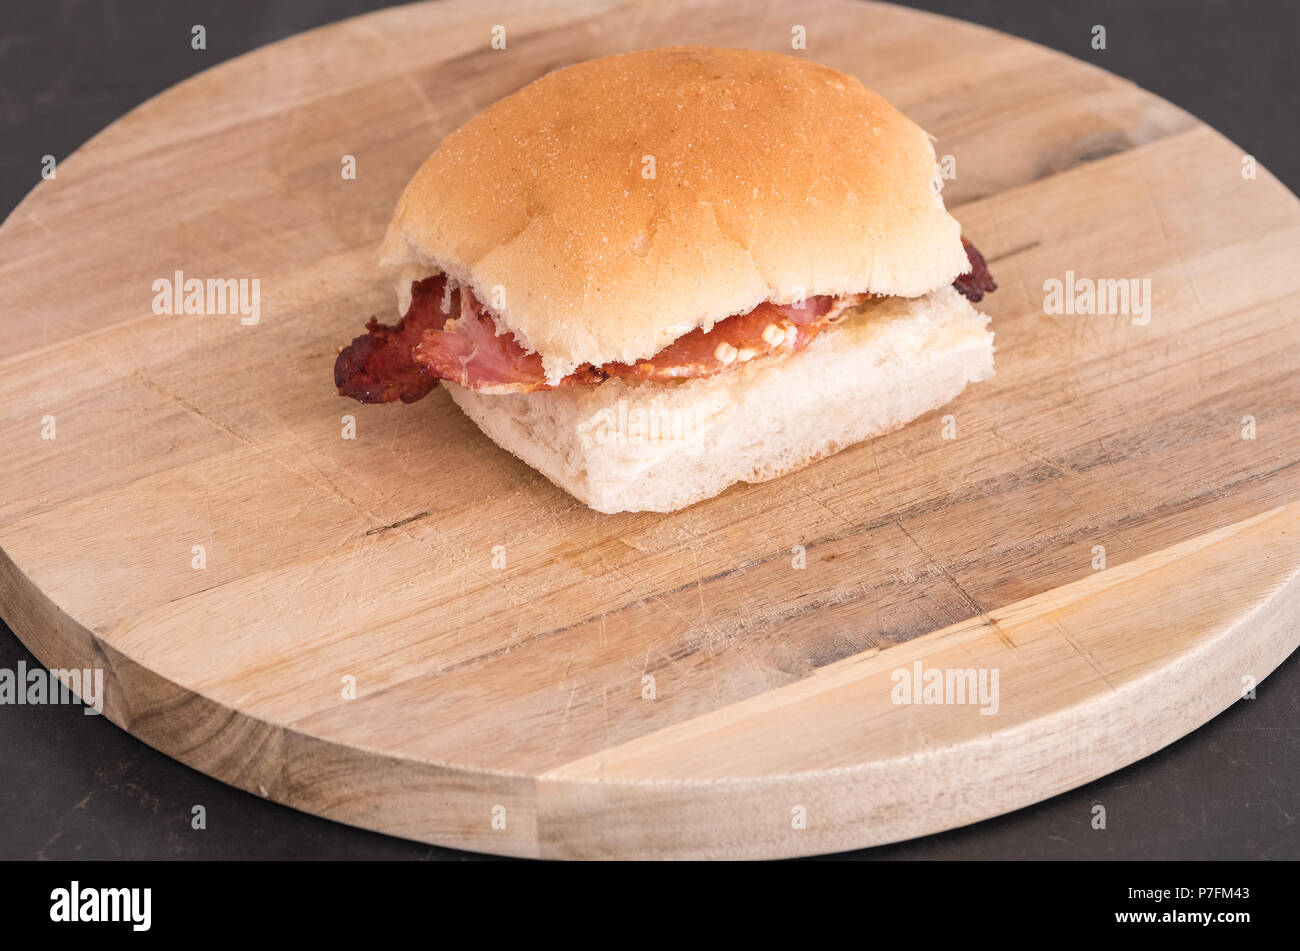 A scottish roll and bacon on a wooden board. A good image for a baker food retailer. - Stock Image